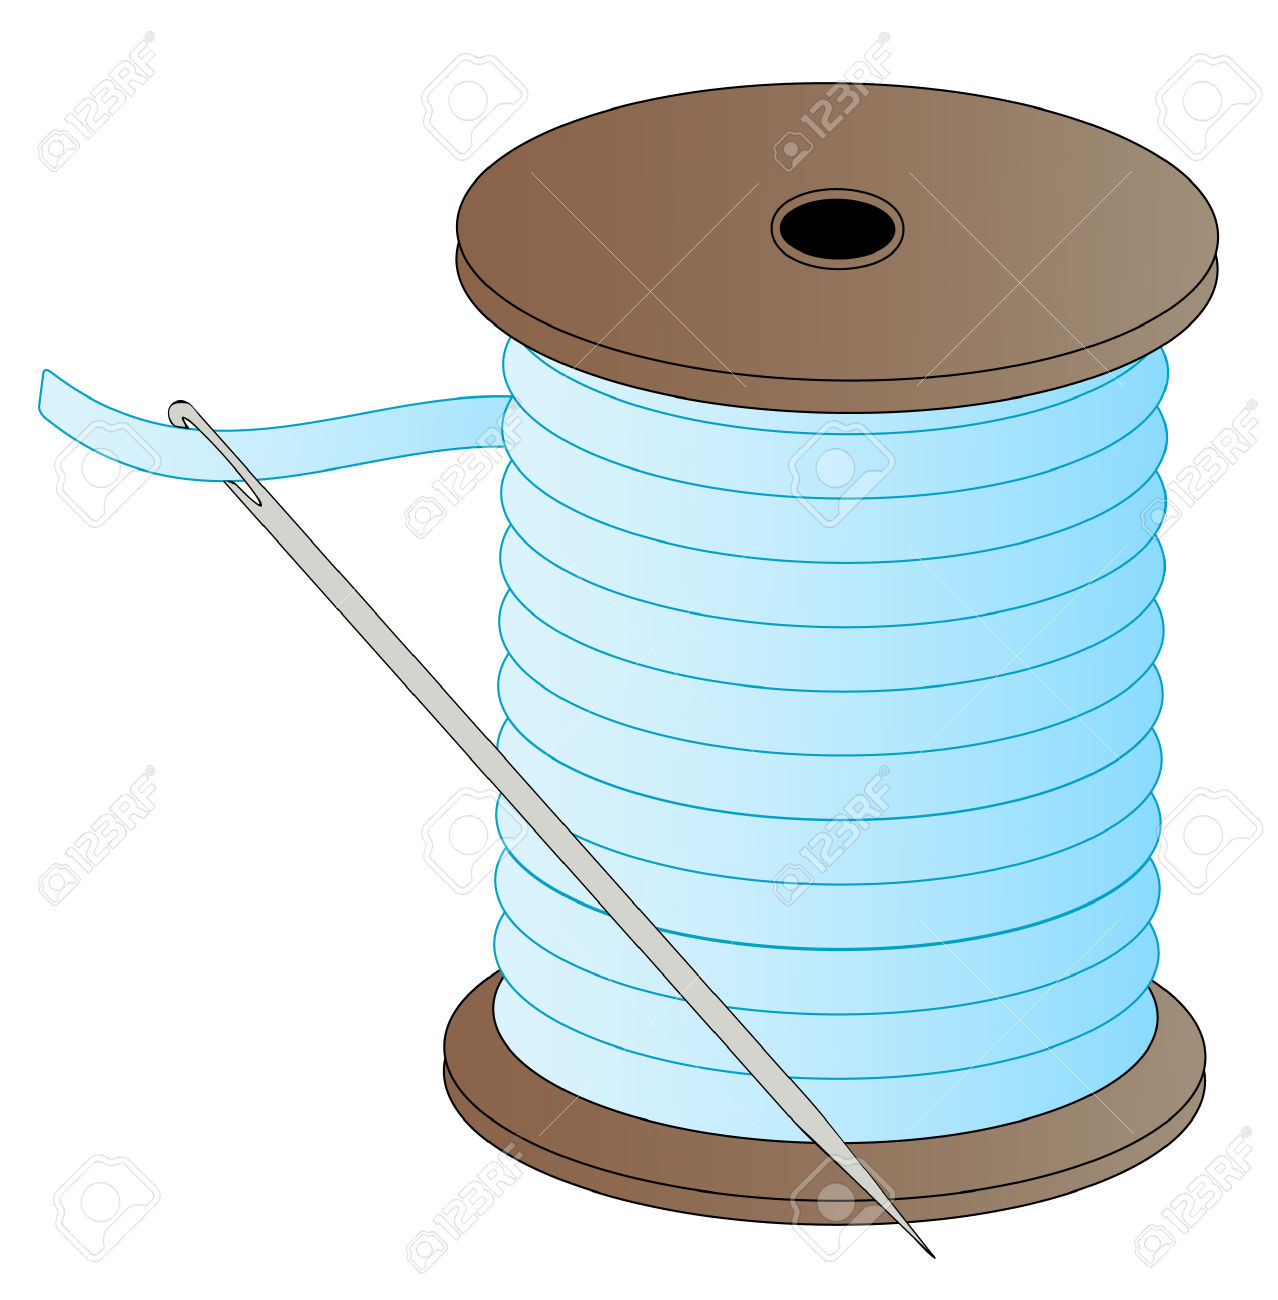 Blue Spool Of Thread With Threaded Needle Attached.